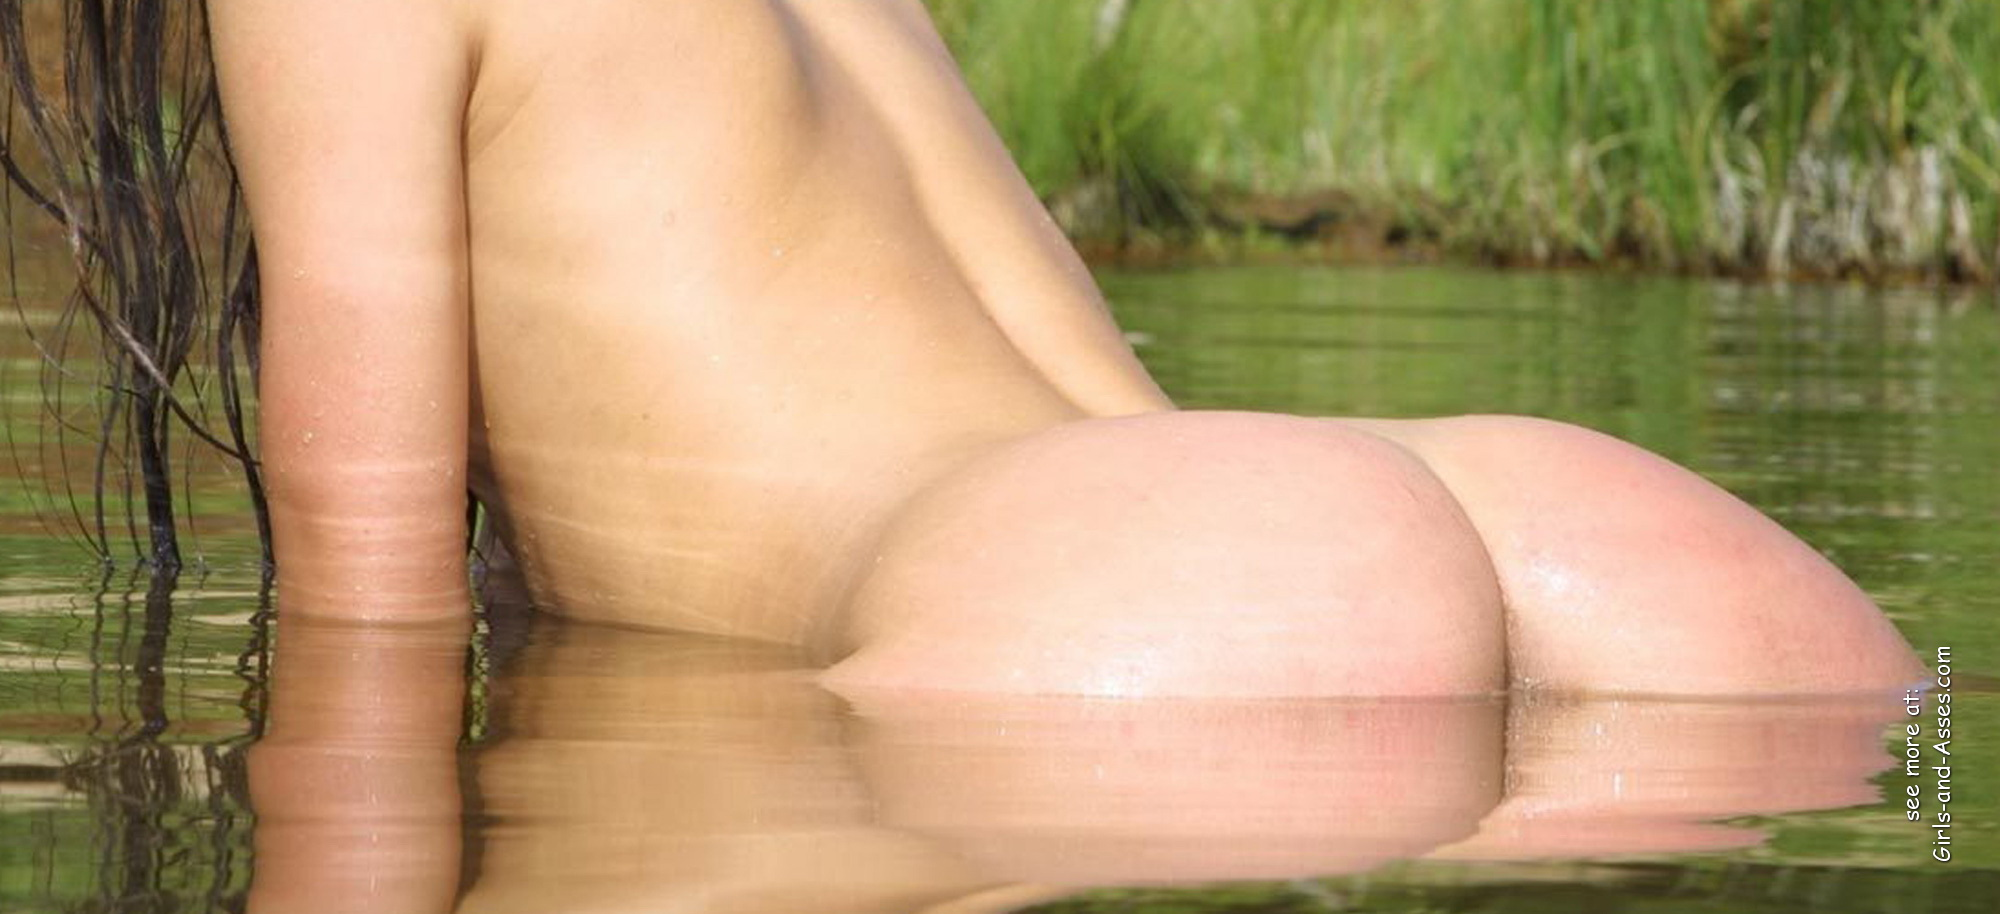 naked girl with cute butt on the river photo 08412